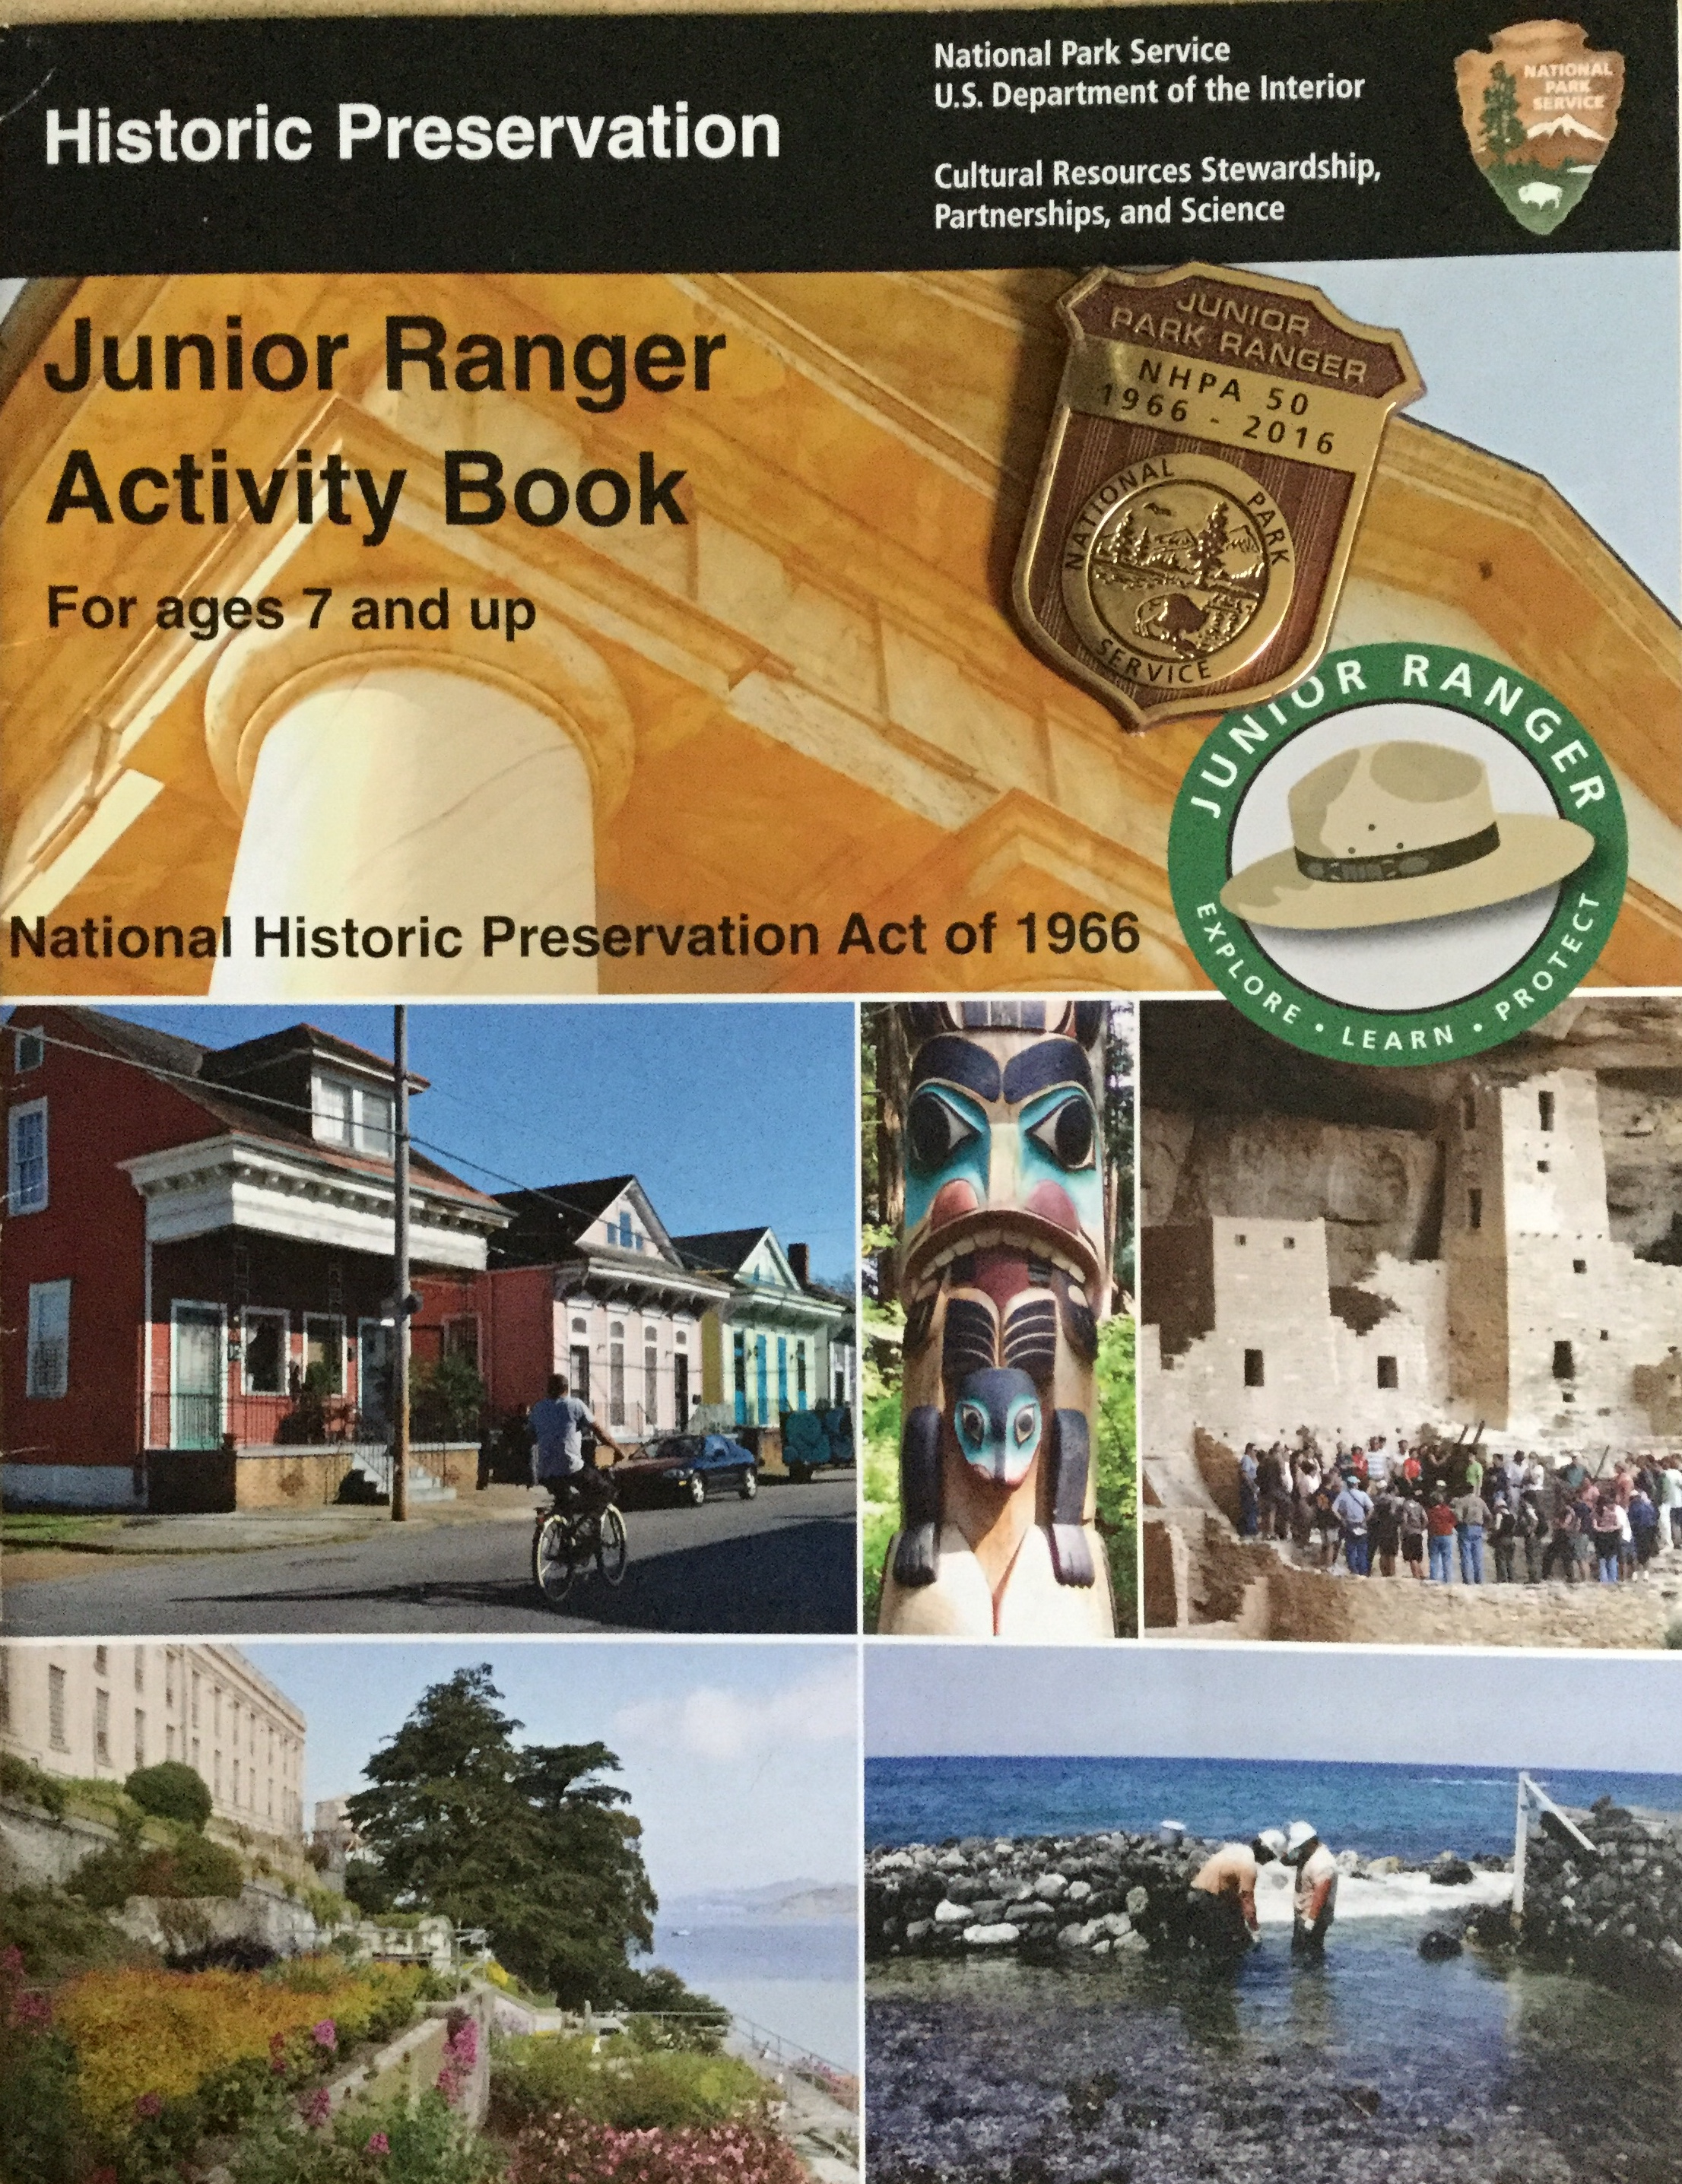 50 Years Of Historic Preservation As Today April 6 2018 The Booklet Is Still Available Online However Badge May Not Be